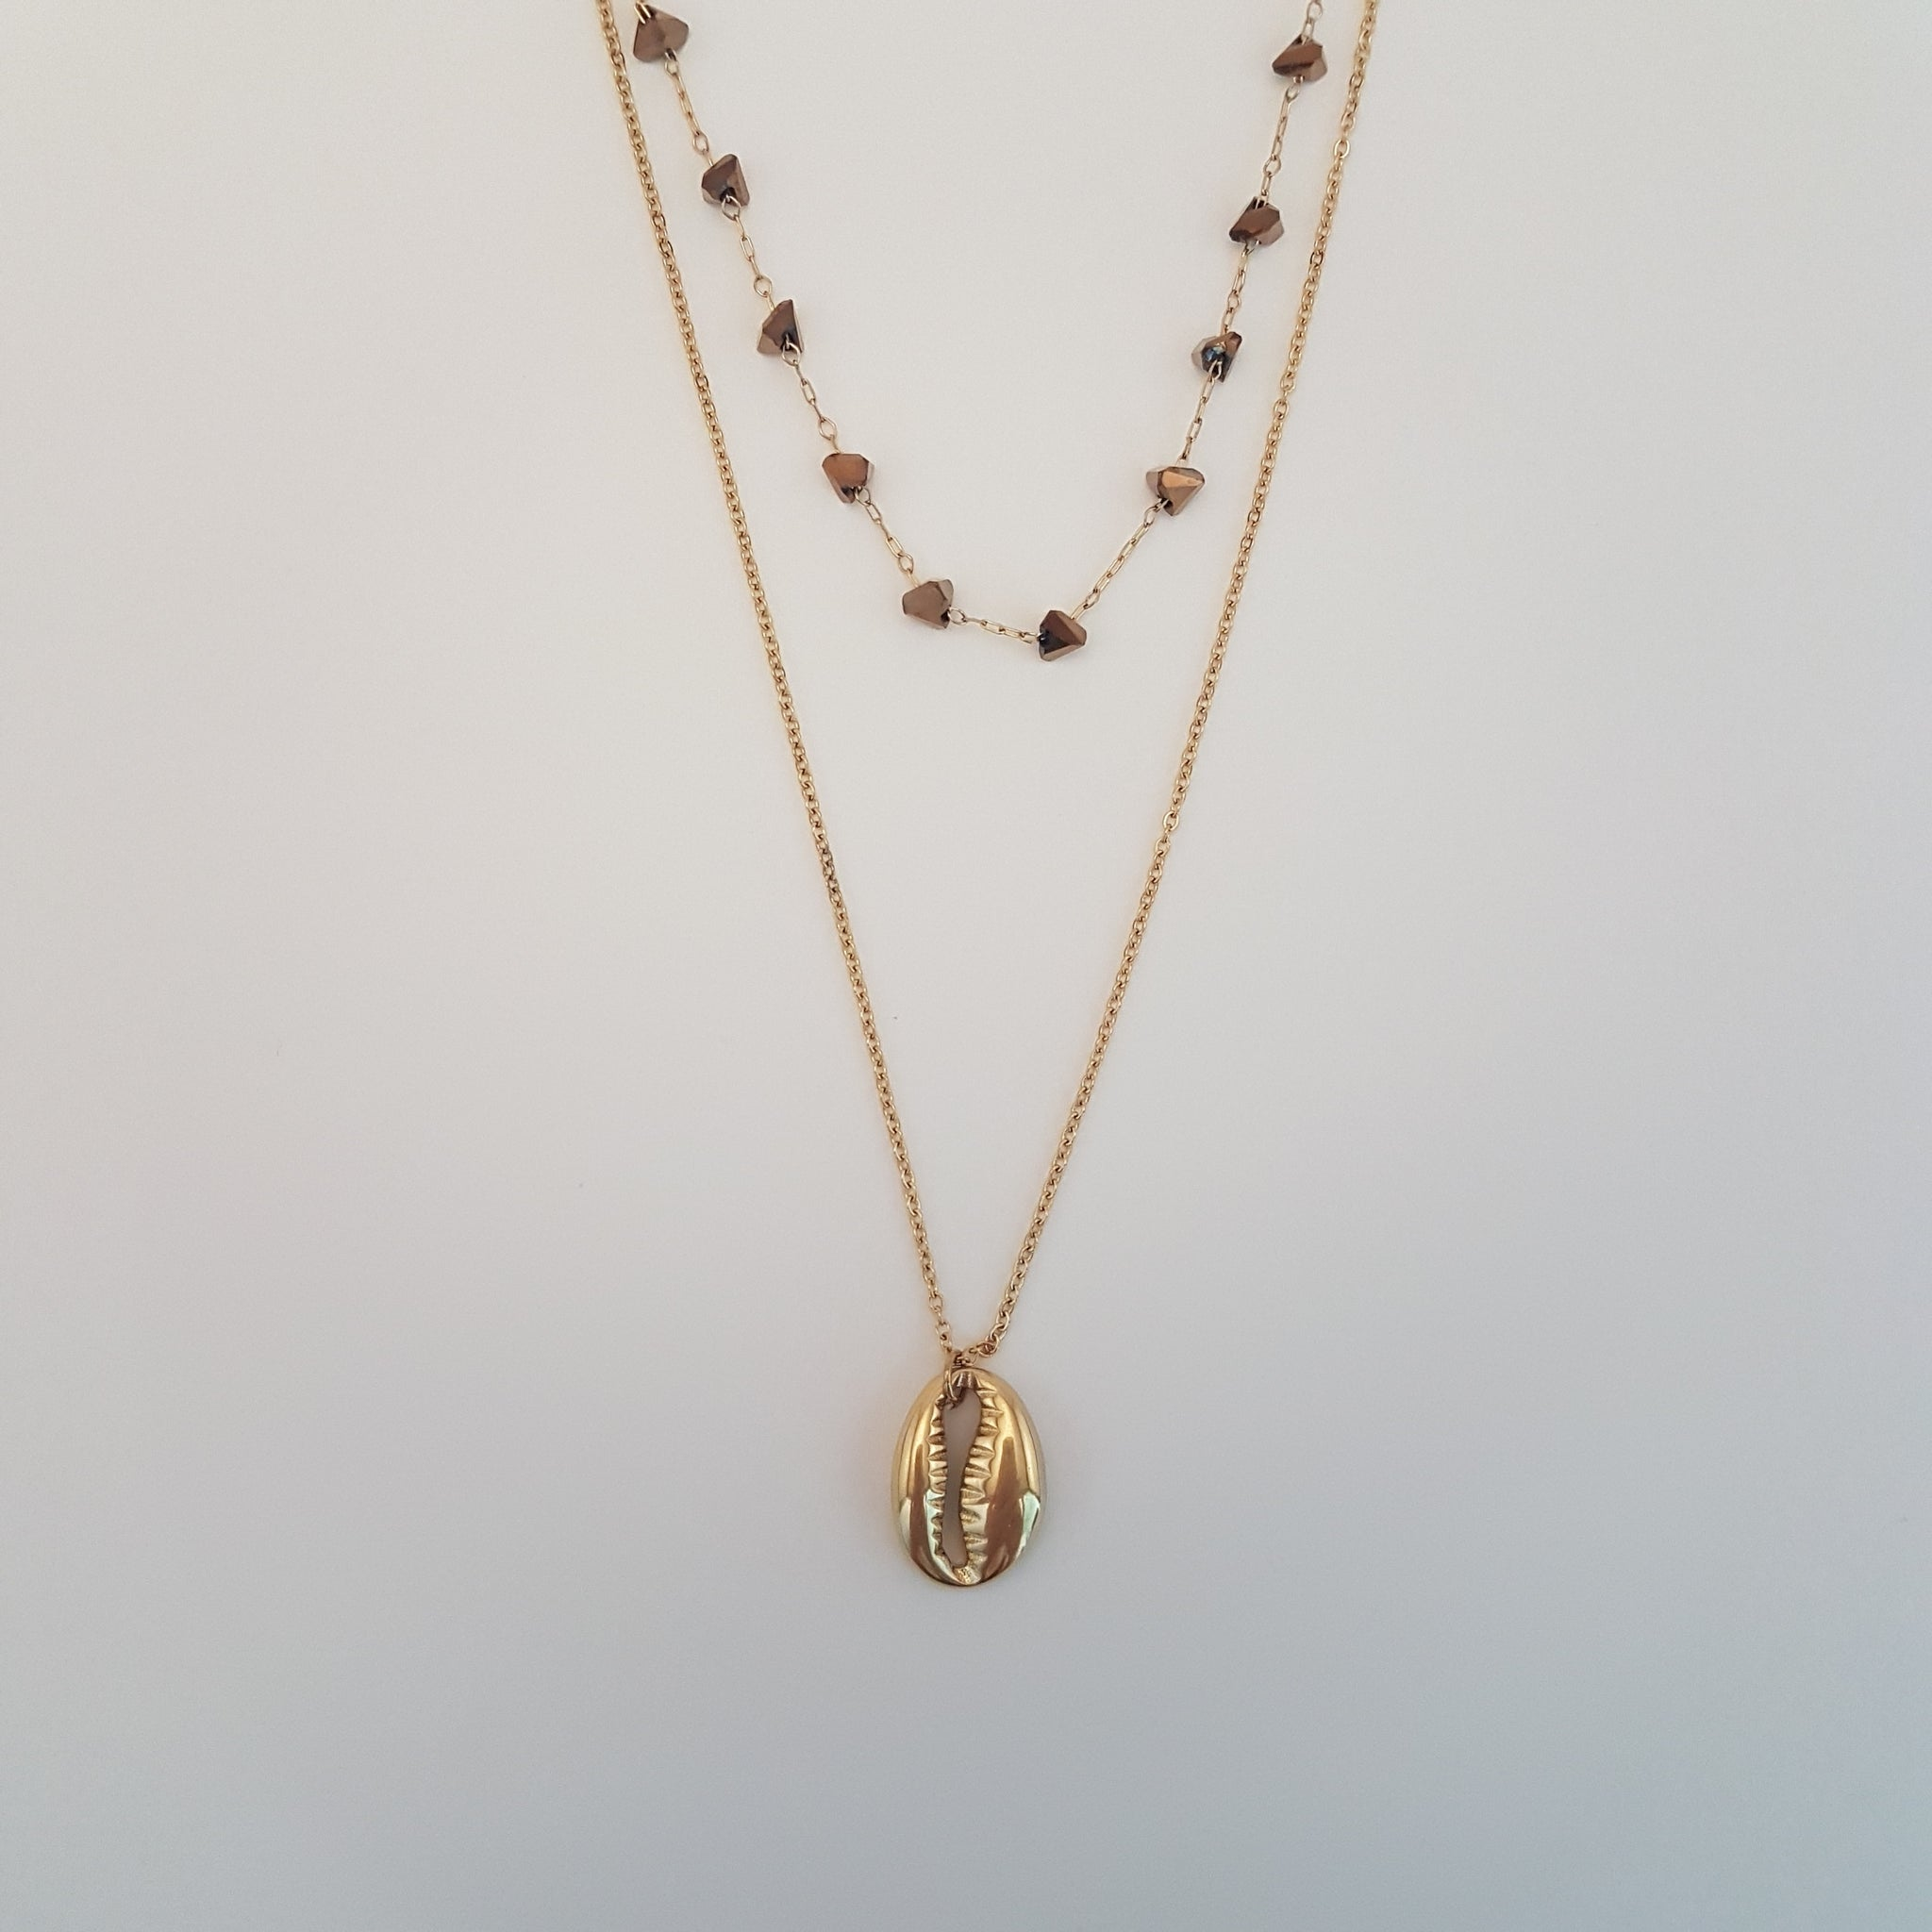 MALÉ NECKLACE